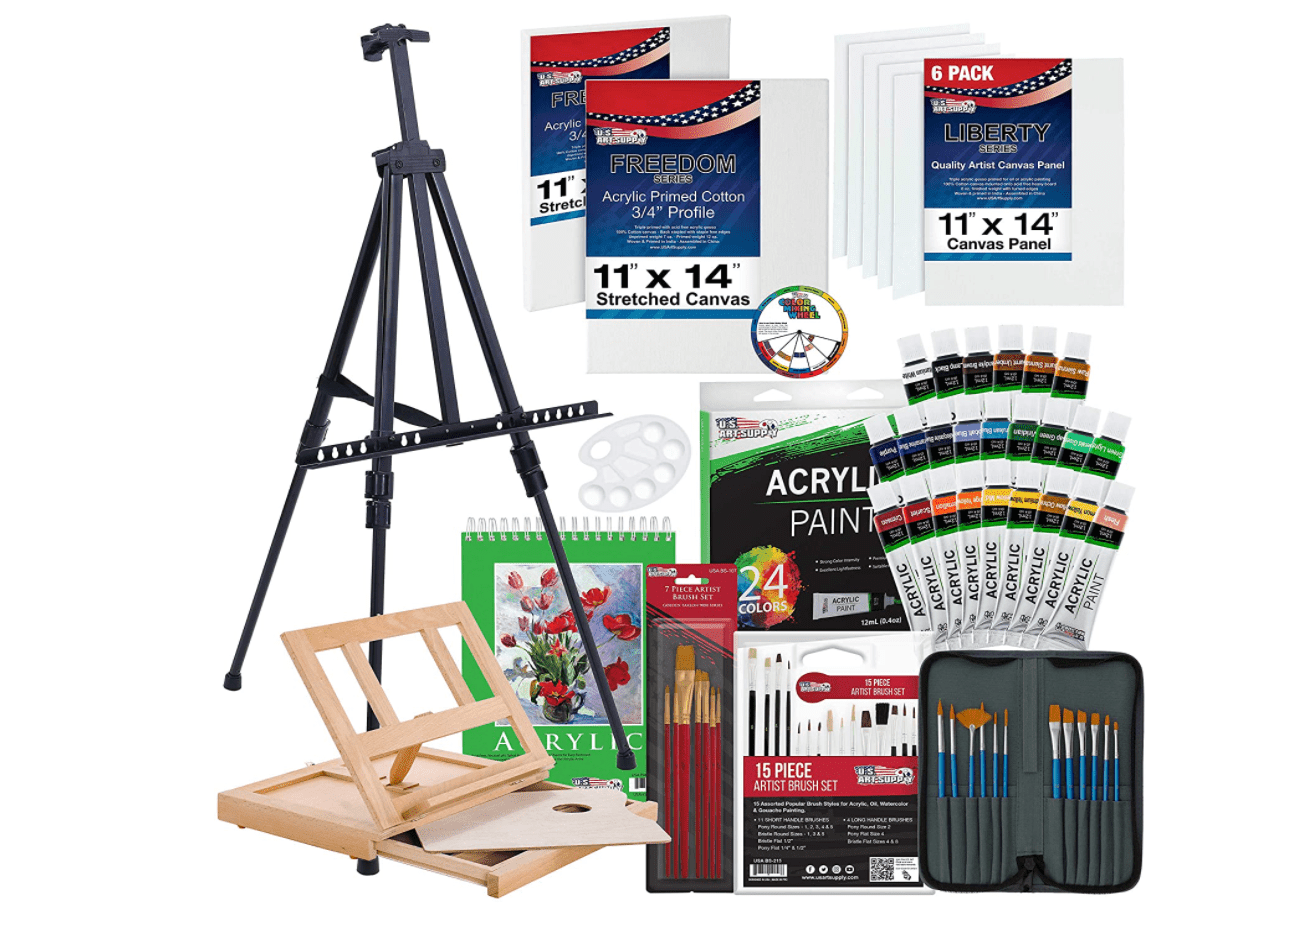 72-Piece Deluxe Acrylic Painting Set